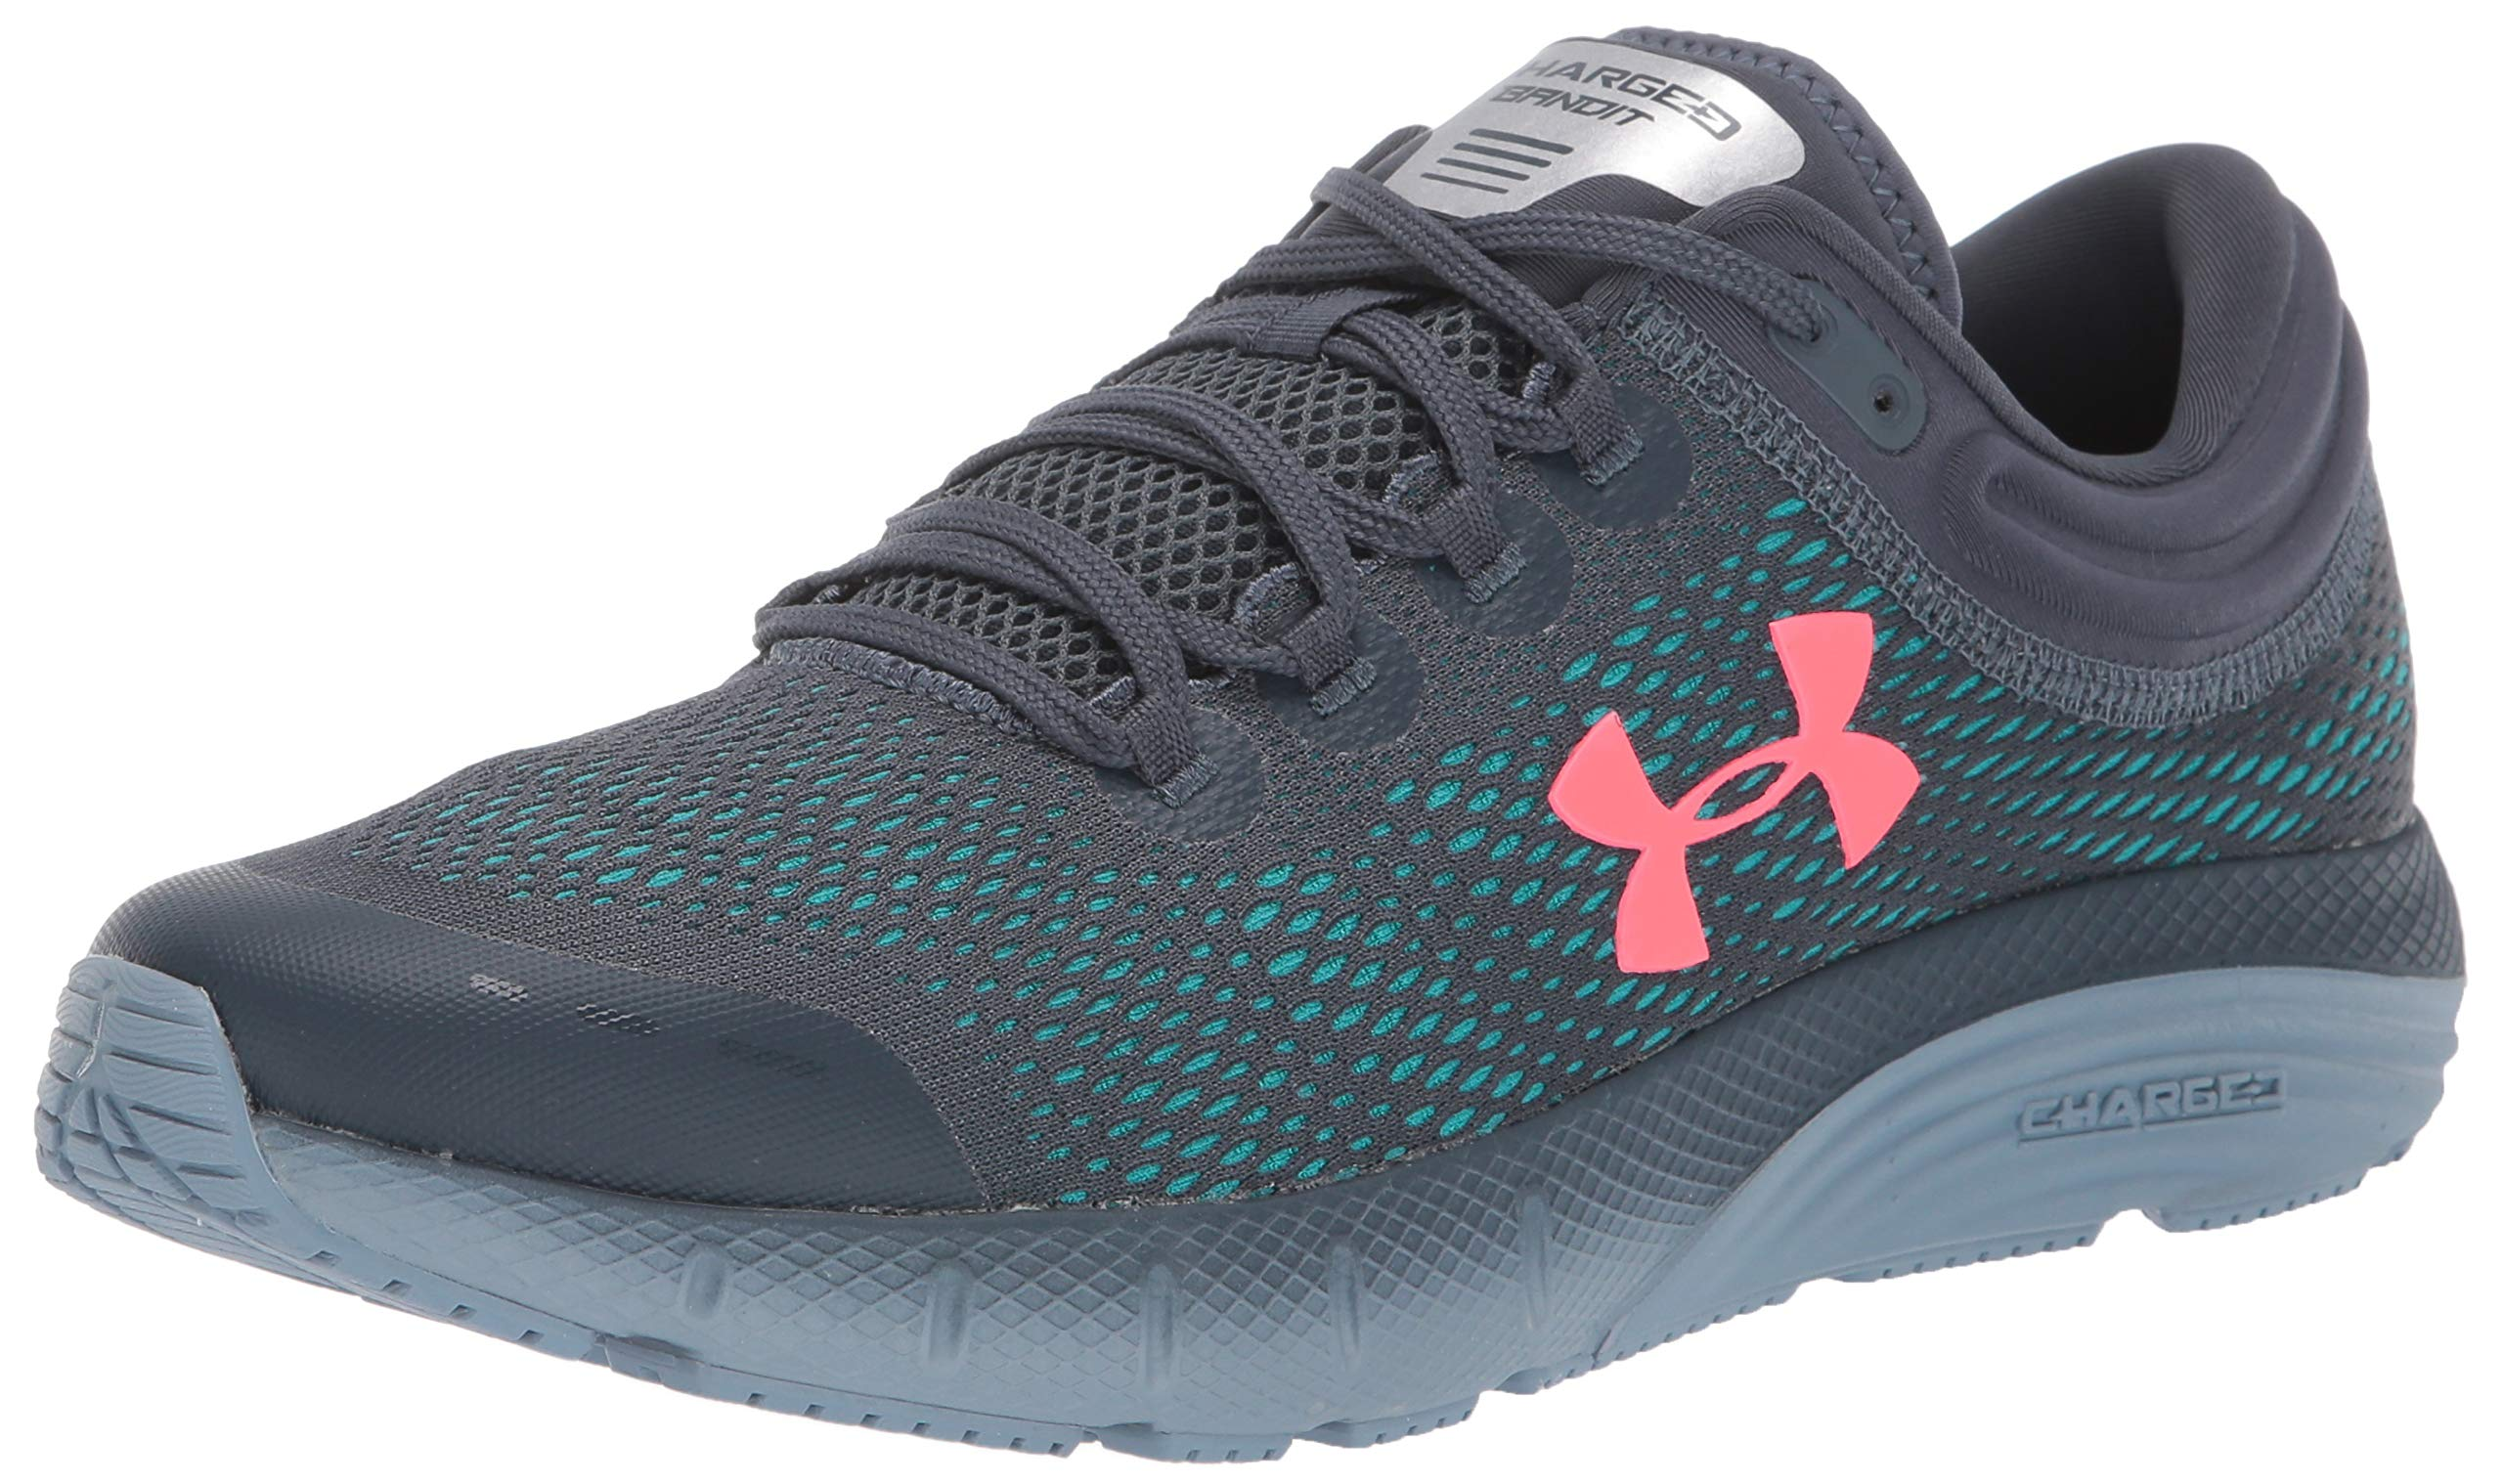 Under Armour Men's UA Charged Bandit 5